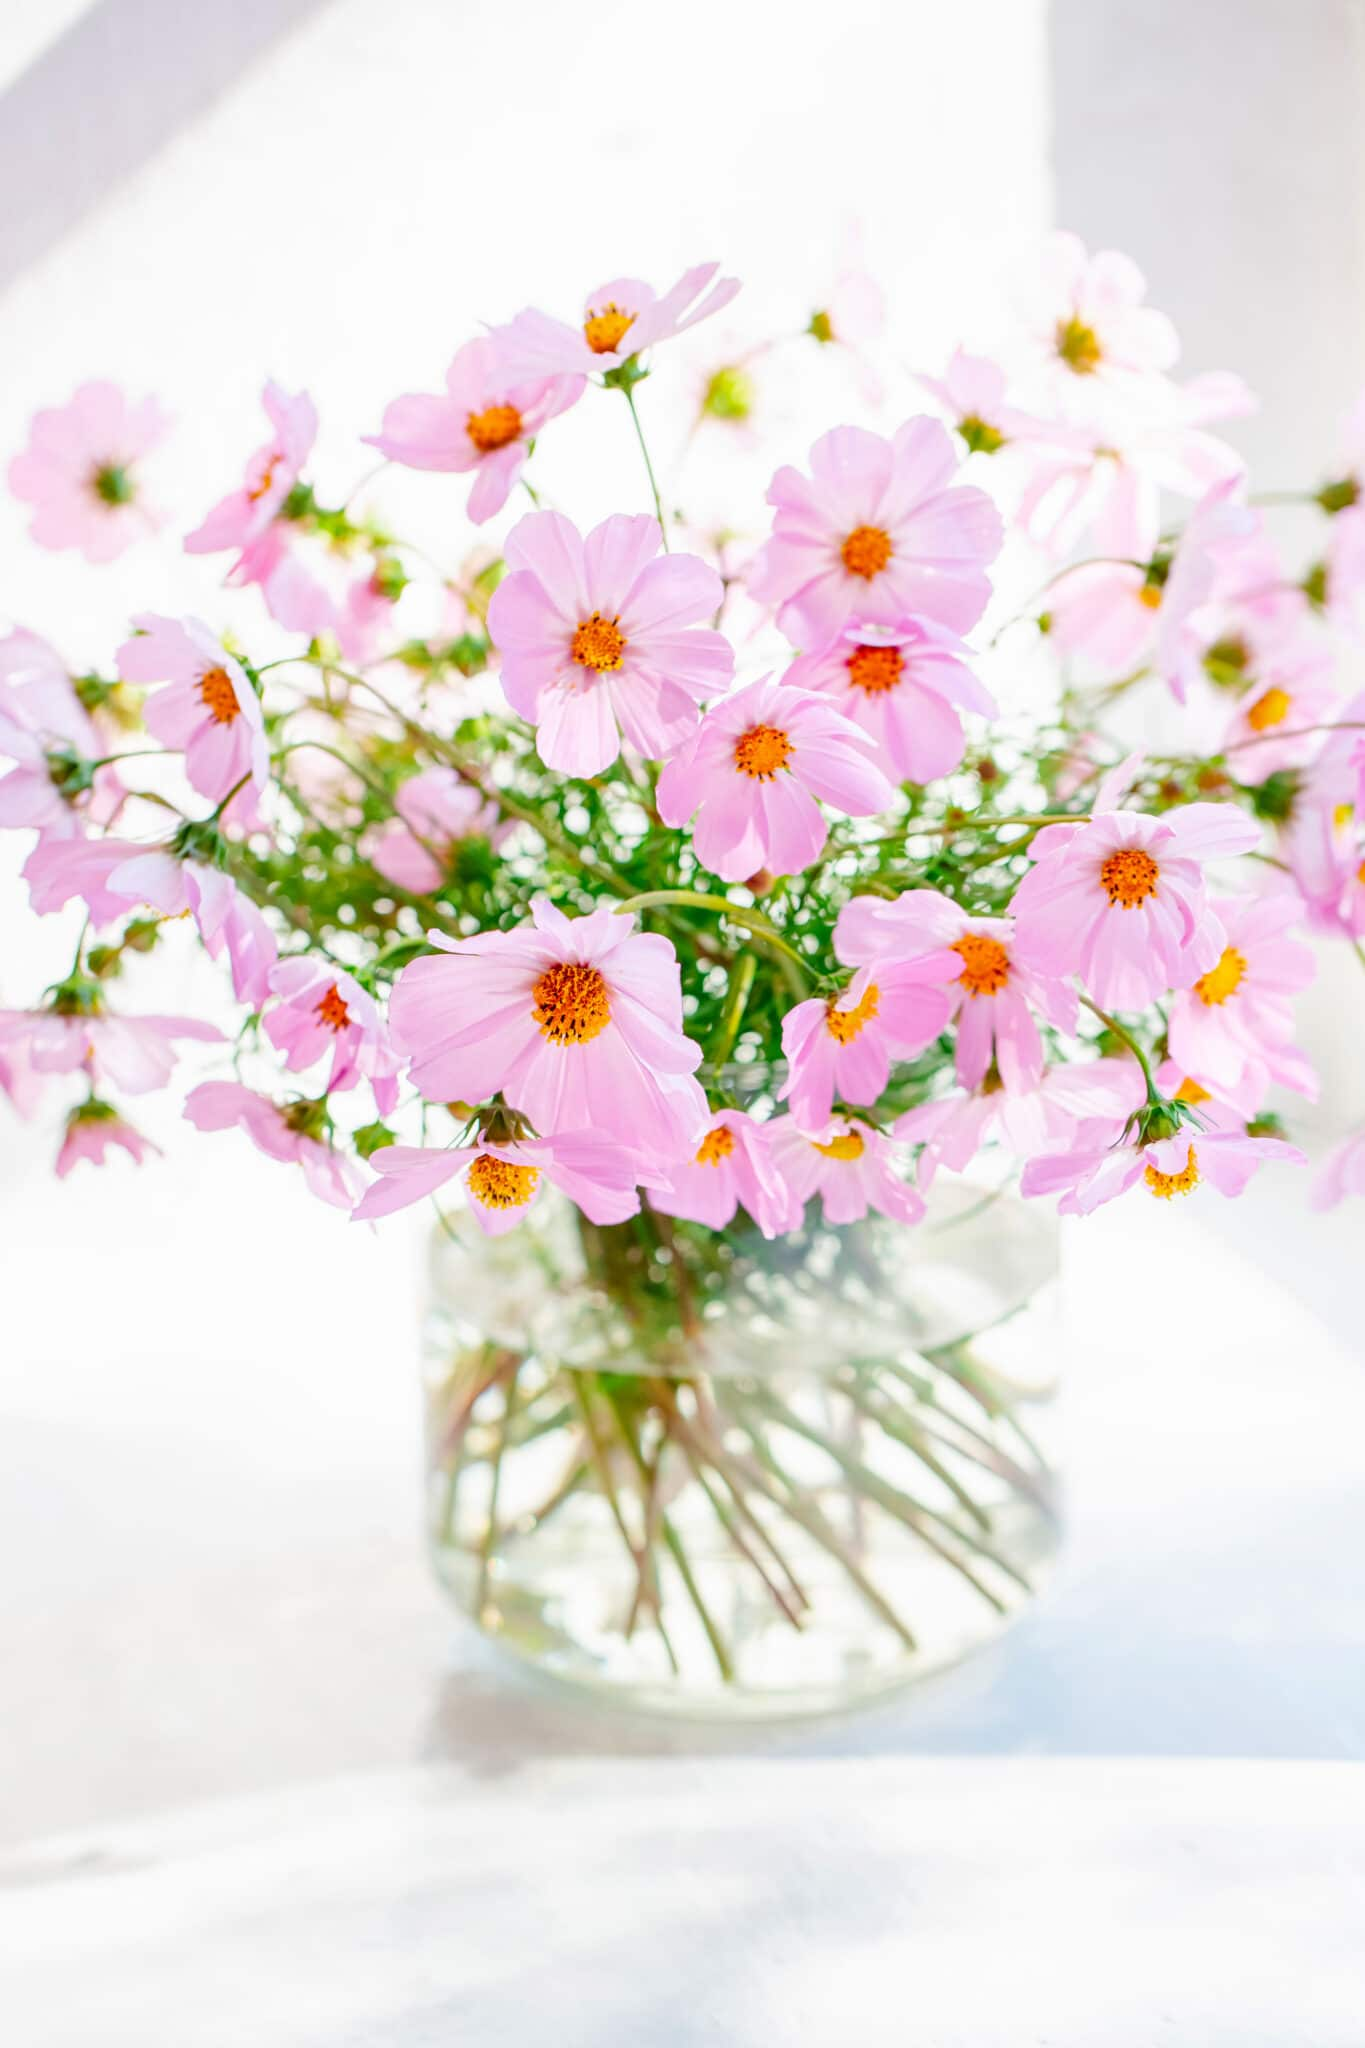 Bouquet of pink flowers. Cosmos flowers picked from the garden and placed in a clear glass vase.